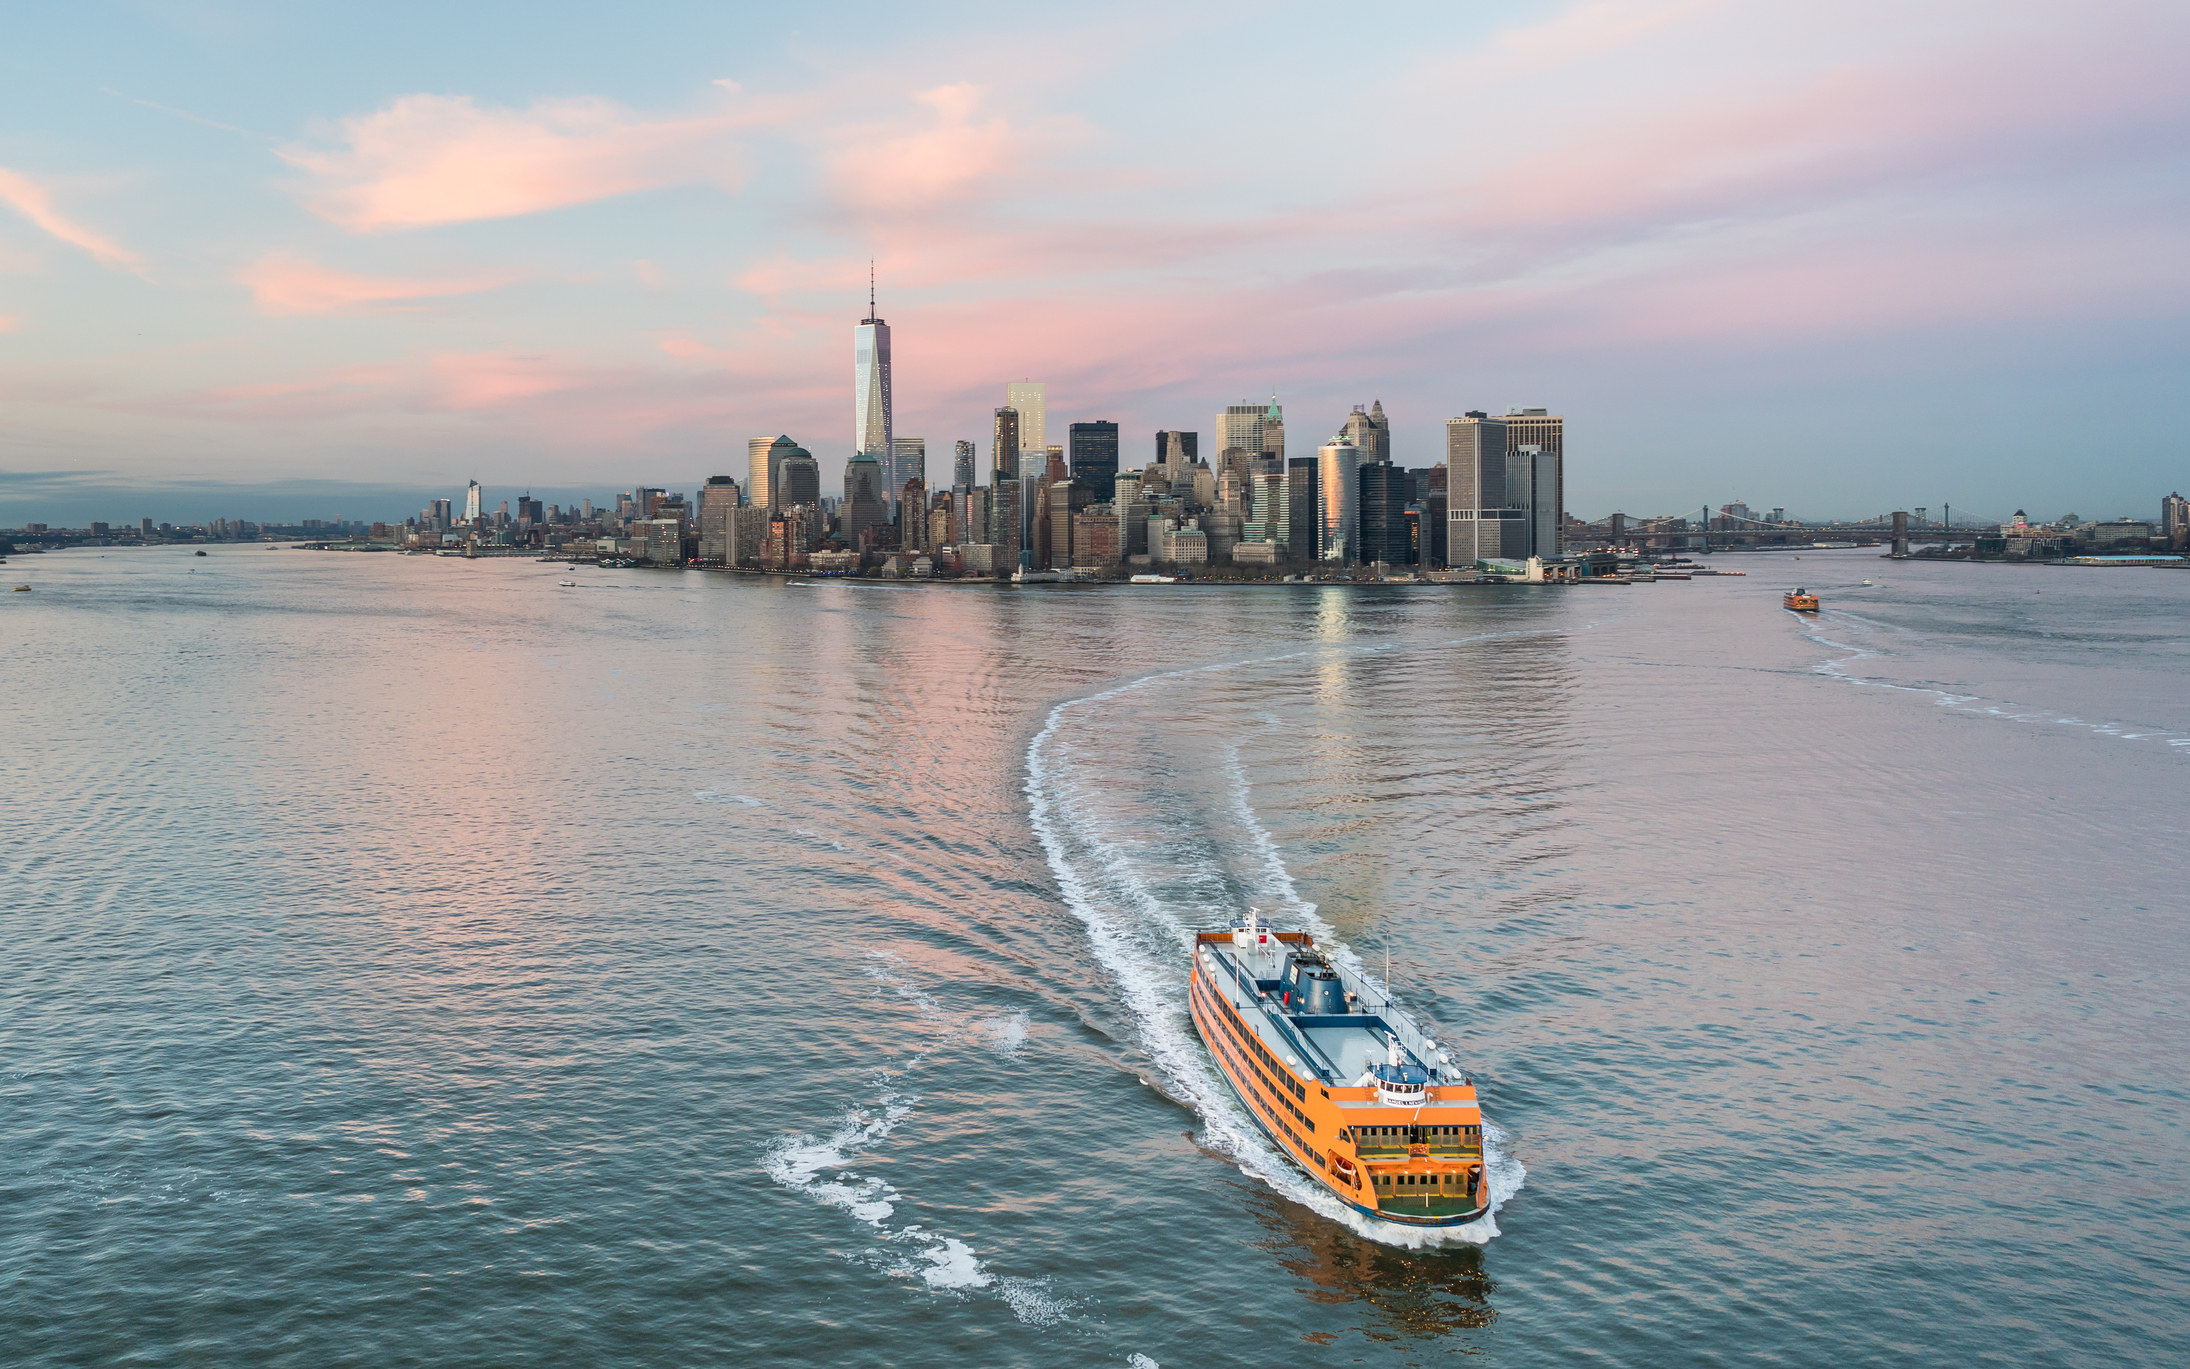 The Staten Island ferry in the Hudson River.